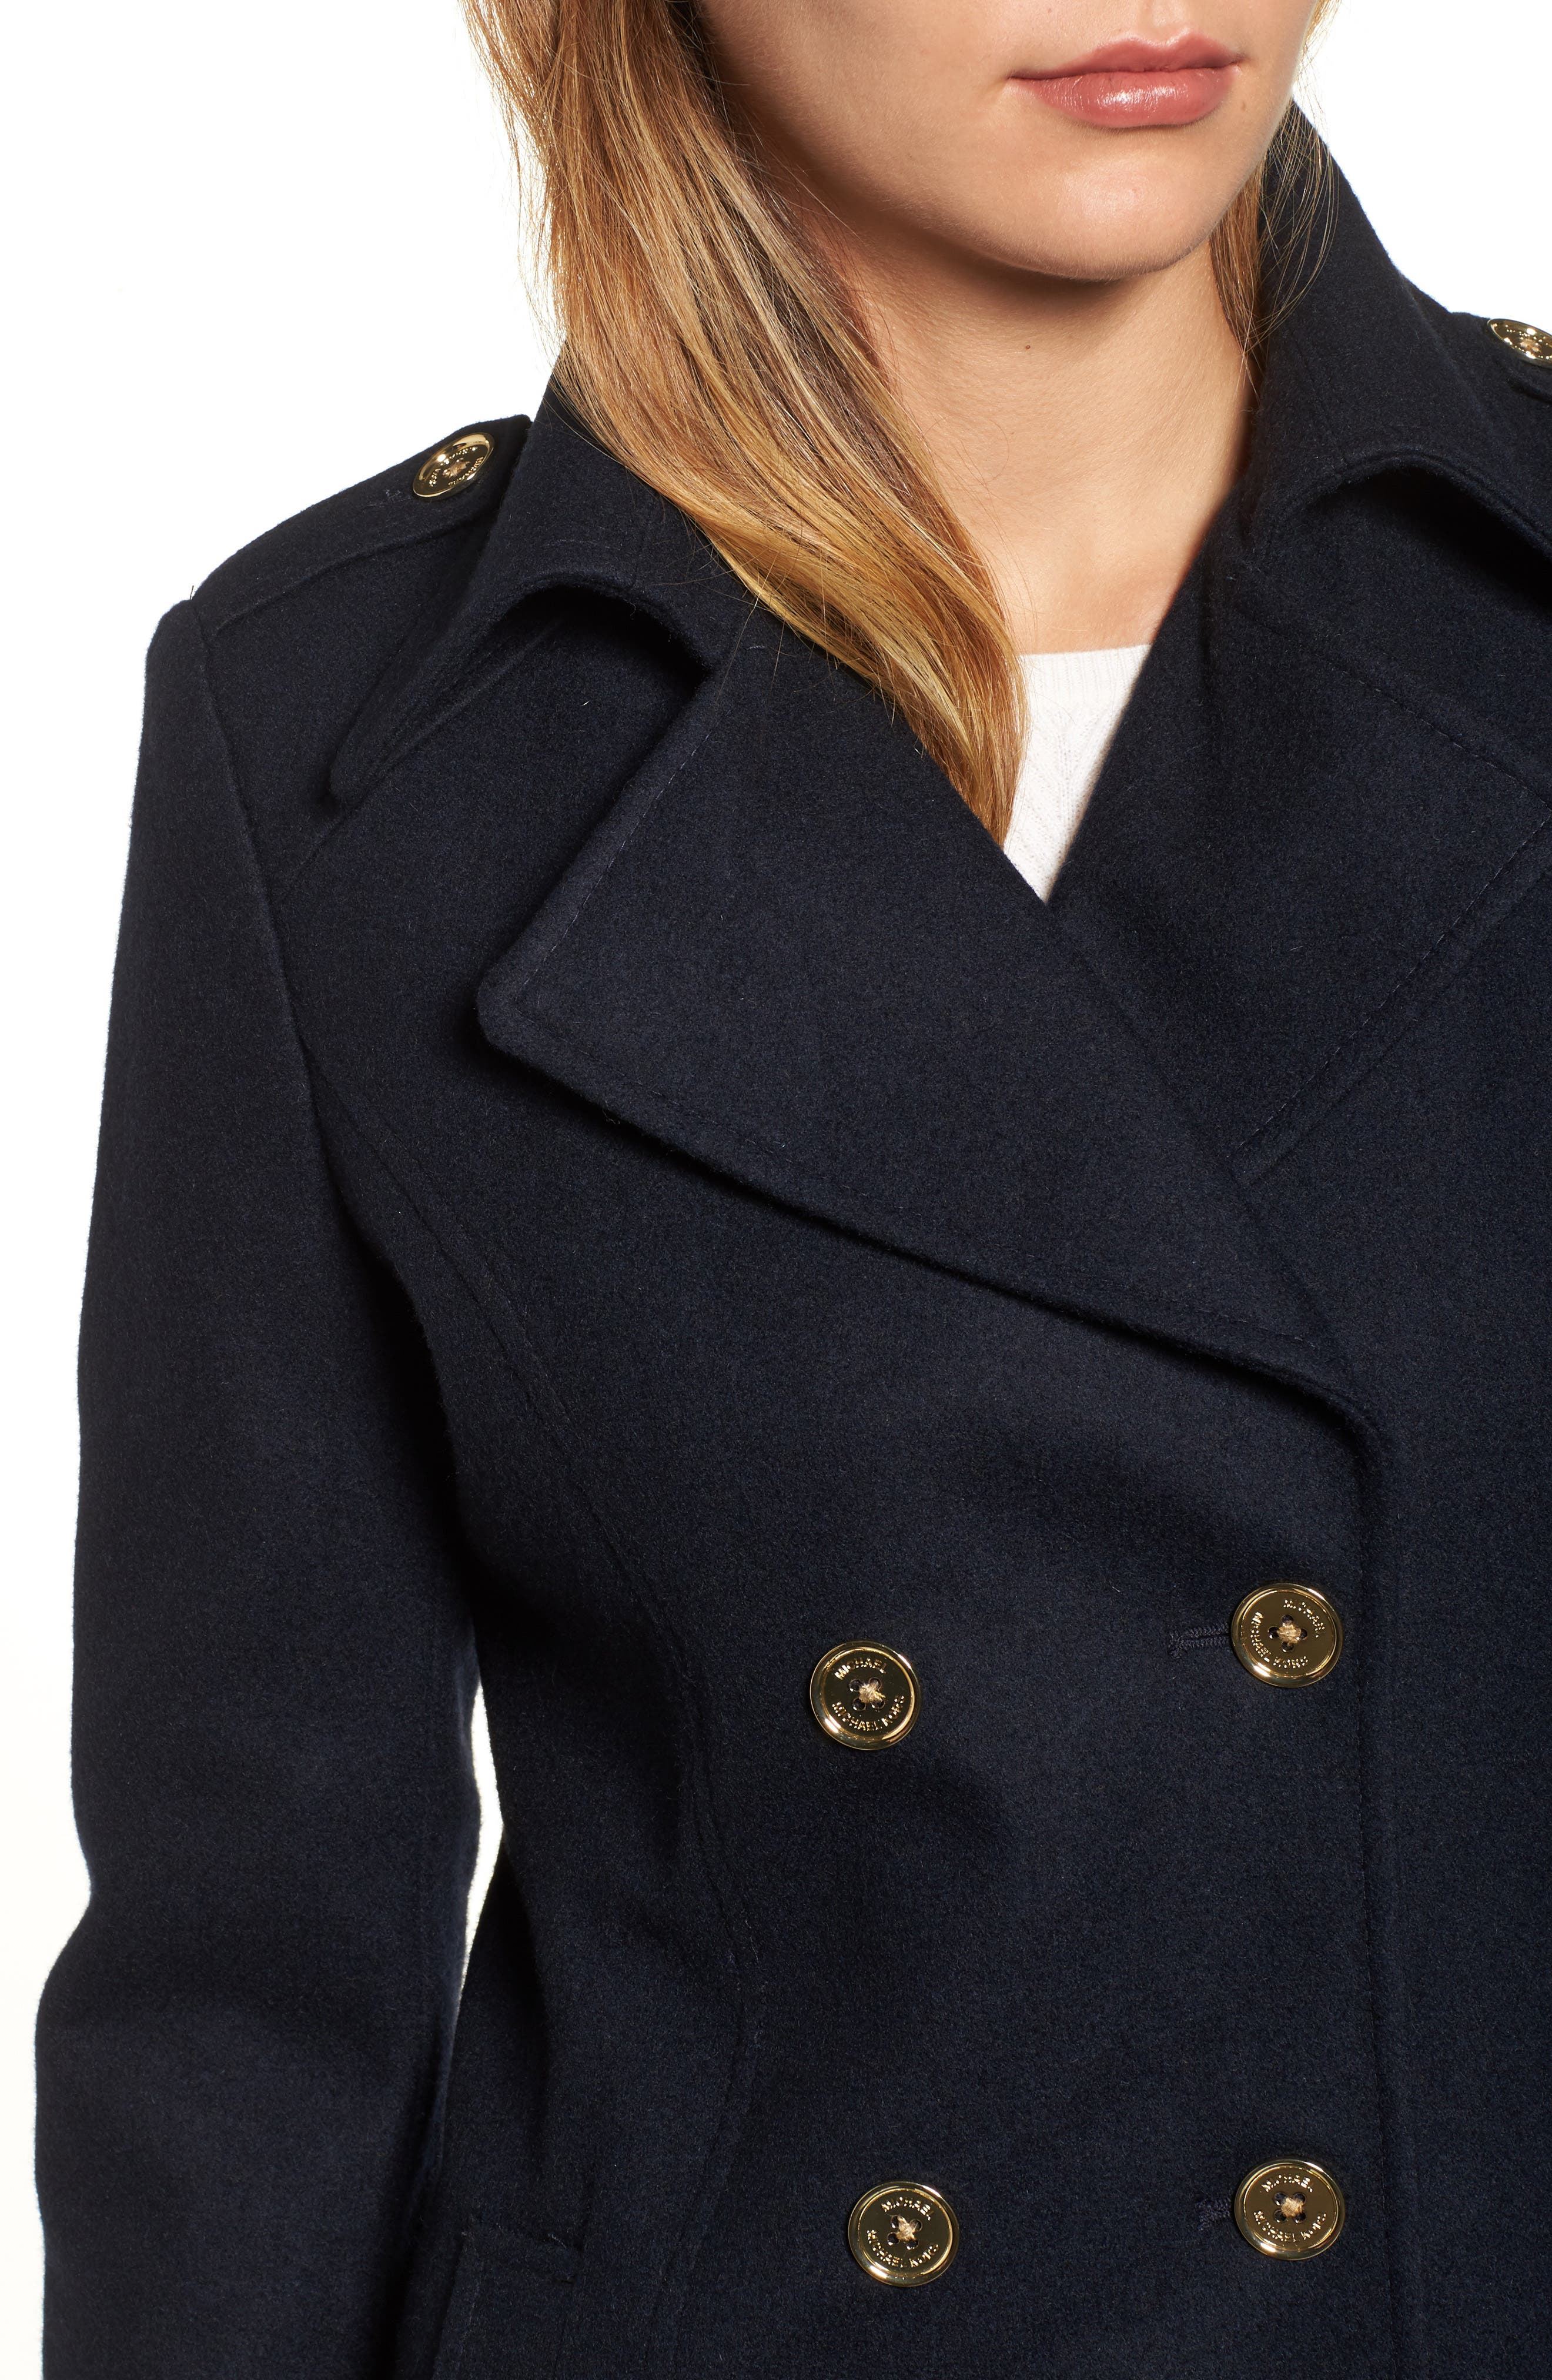 Double Breasted Wool Blend Peacoat,                             Alternate thumbnail 4, color,                             Navy